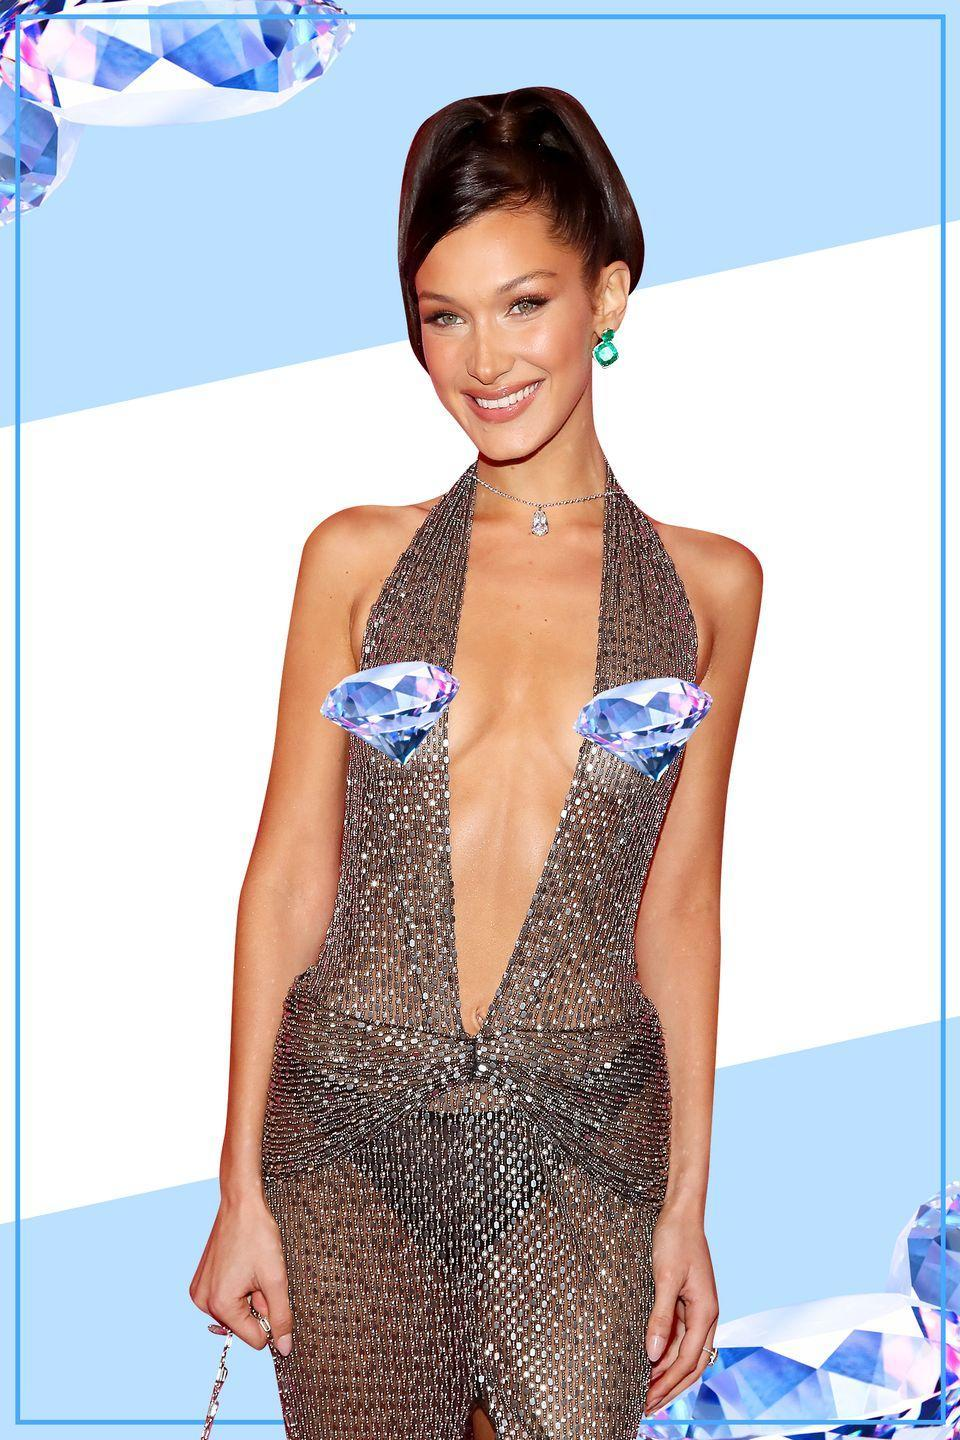 <p>After showing off her entire body at the Victoria's Secret fashion show, Bella slipped into something a little more... revealing. She rocked this ultra sexy see-through dress, flaunting the hottest accessory of the night: her nips. </p>